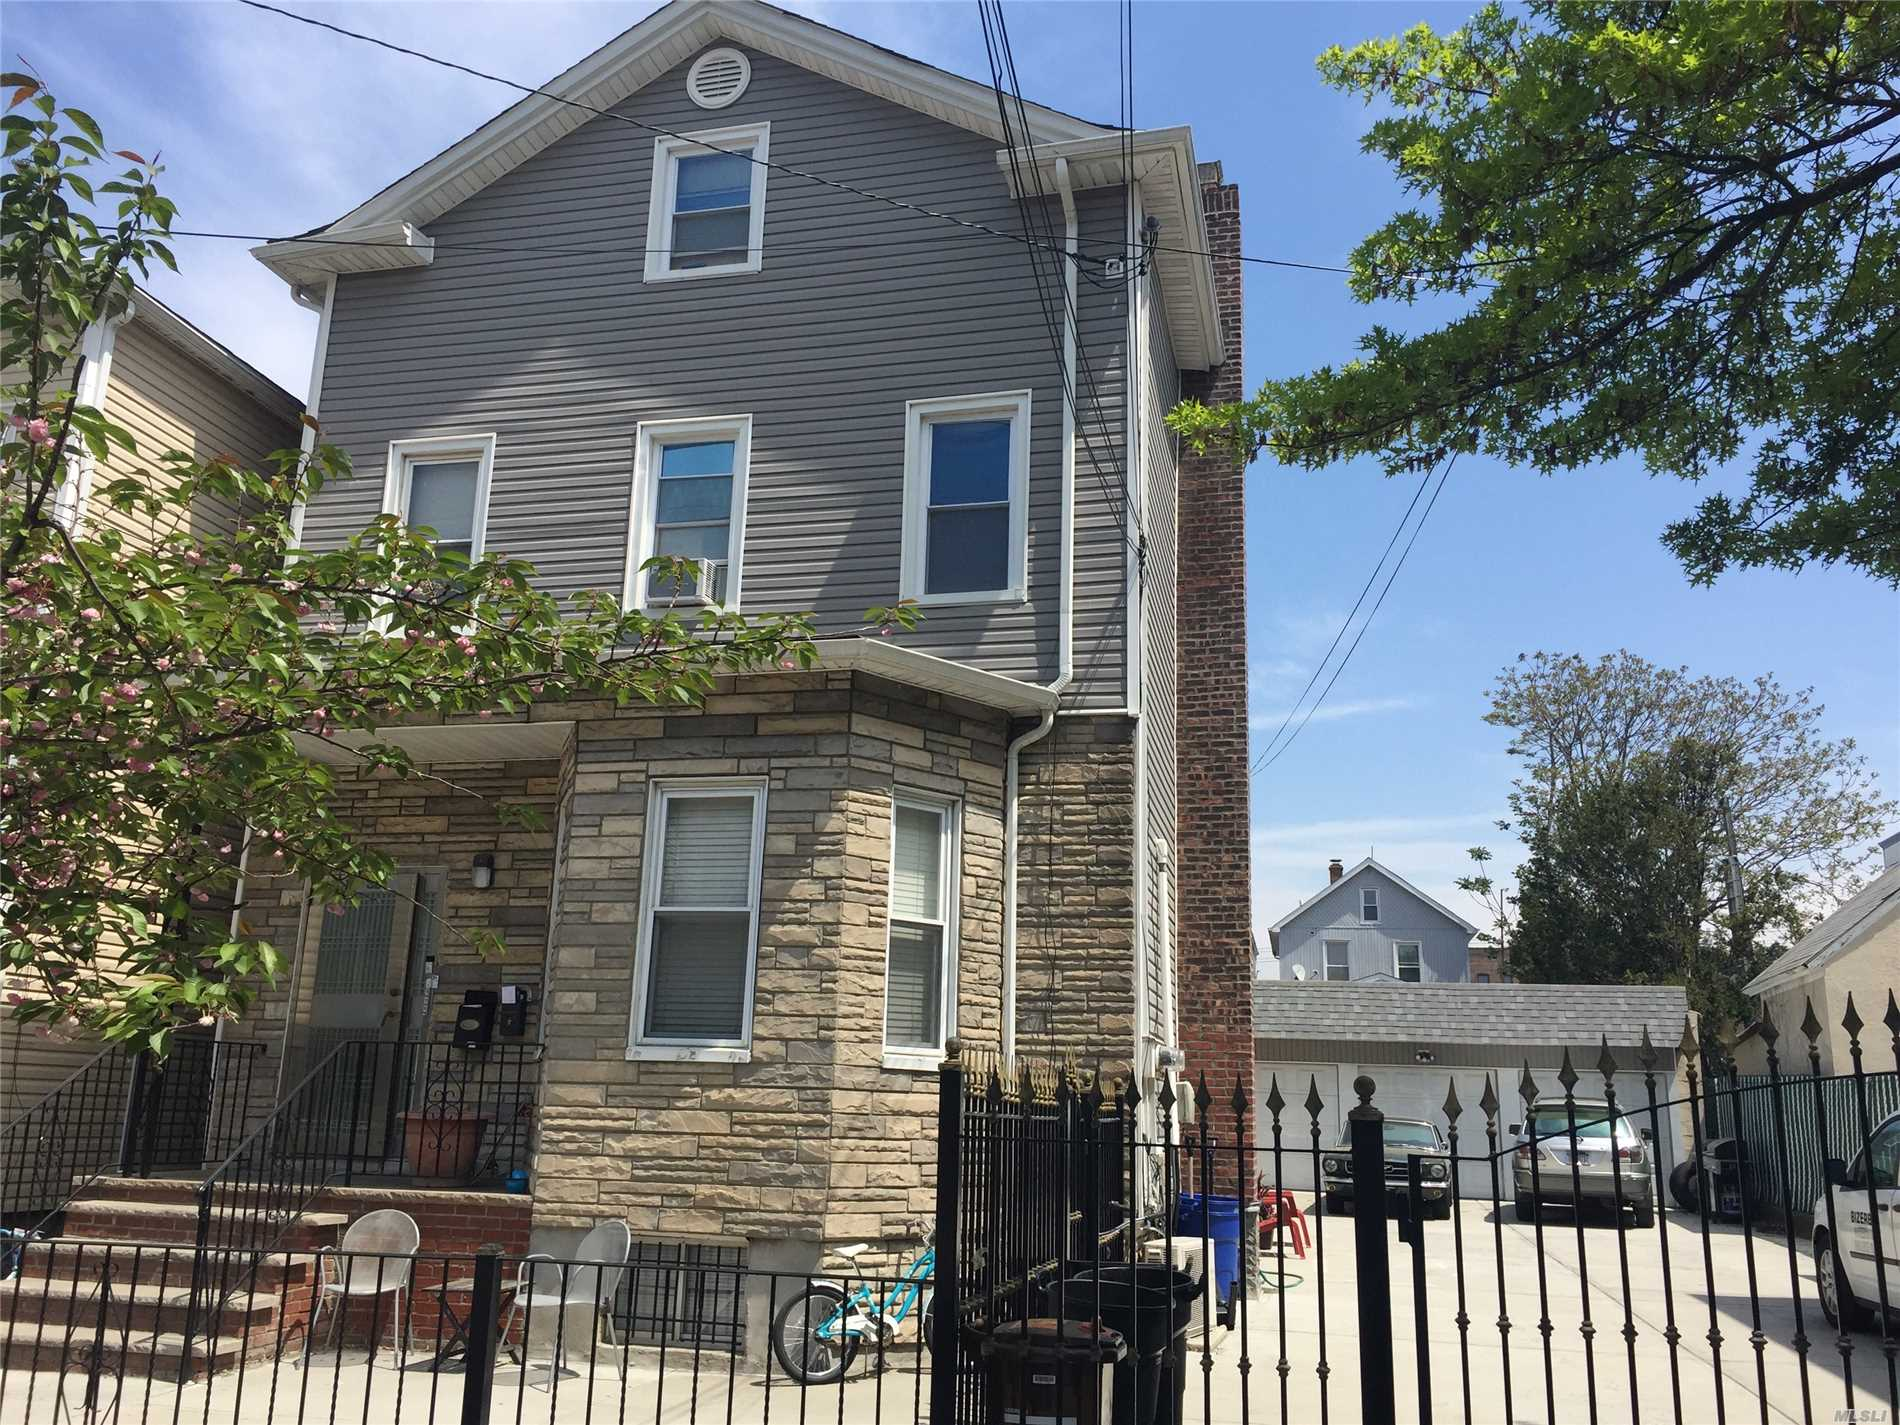 Superb 2 Family In Great Location.. 3 Car Garage 2 Bedrooms 1550 + 100 Parking.. 2 Bedrooms 1500